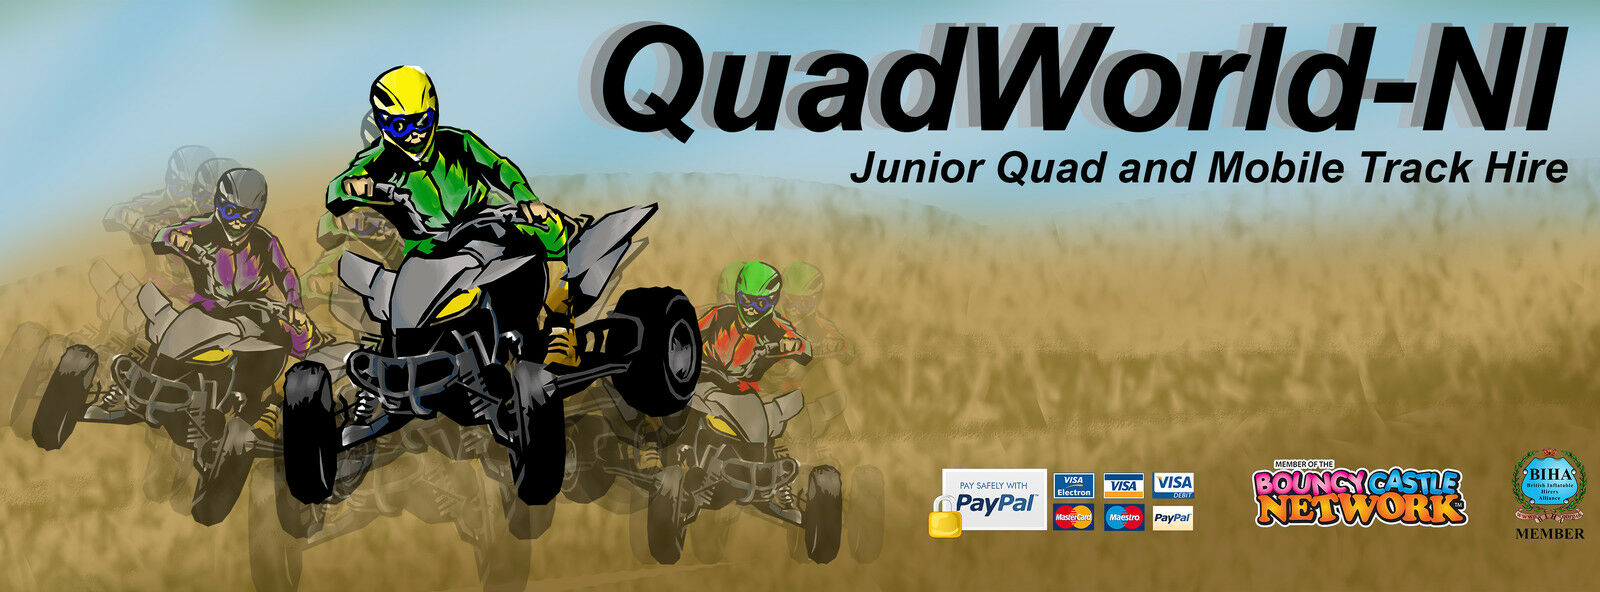 quadworldni2015